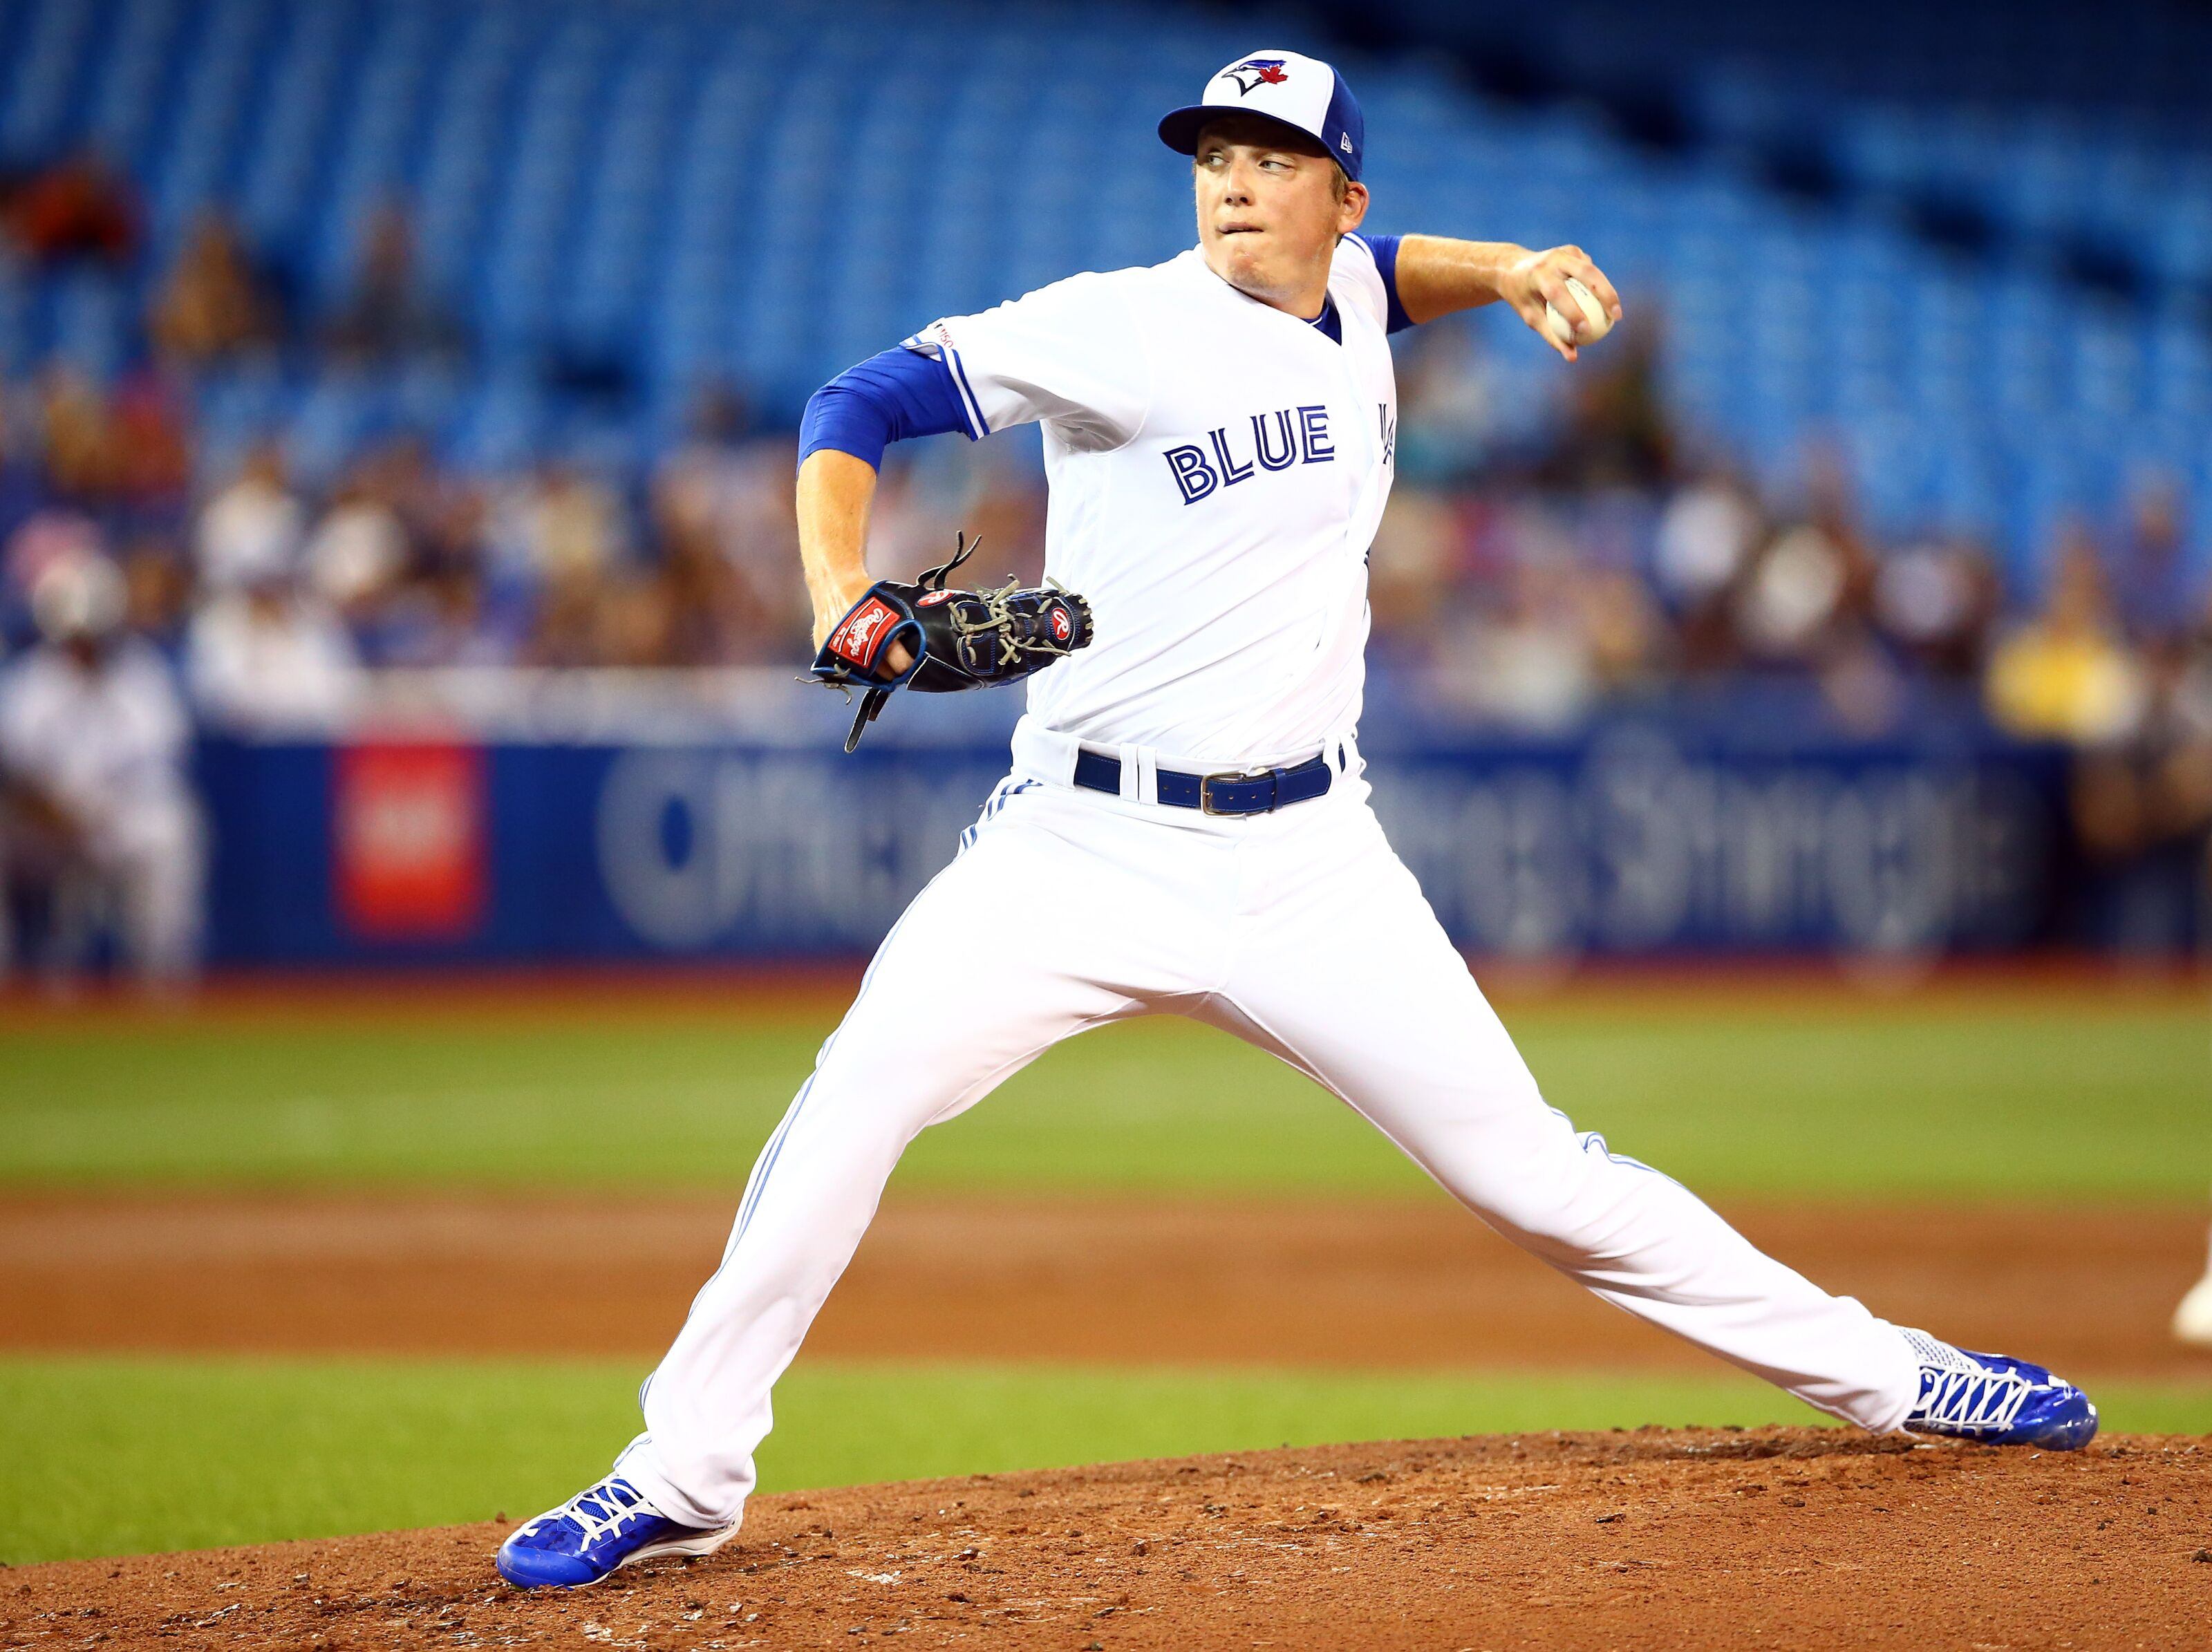 Blue Jays: Ryan Borucki could be the key to an improved rotation